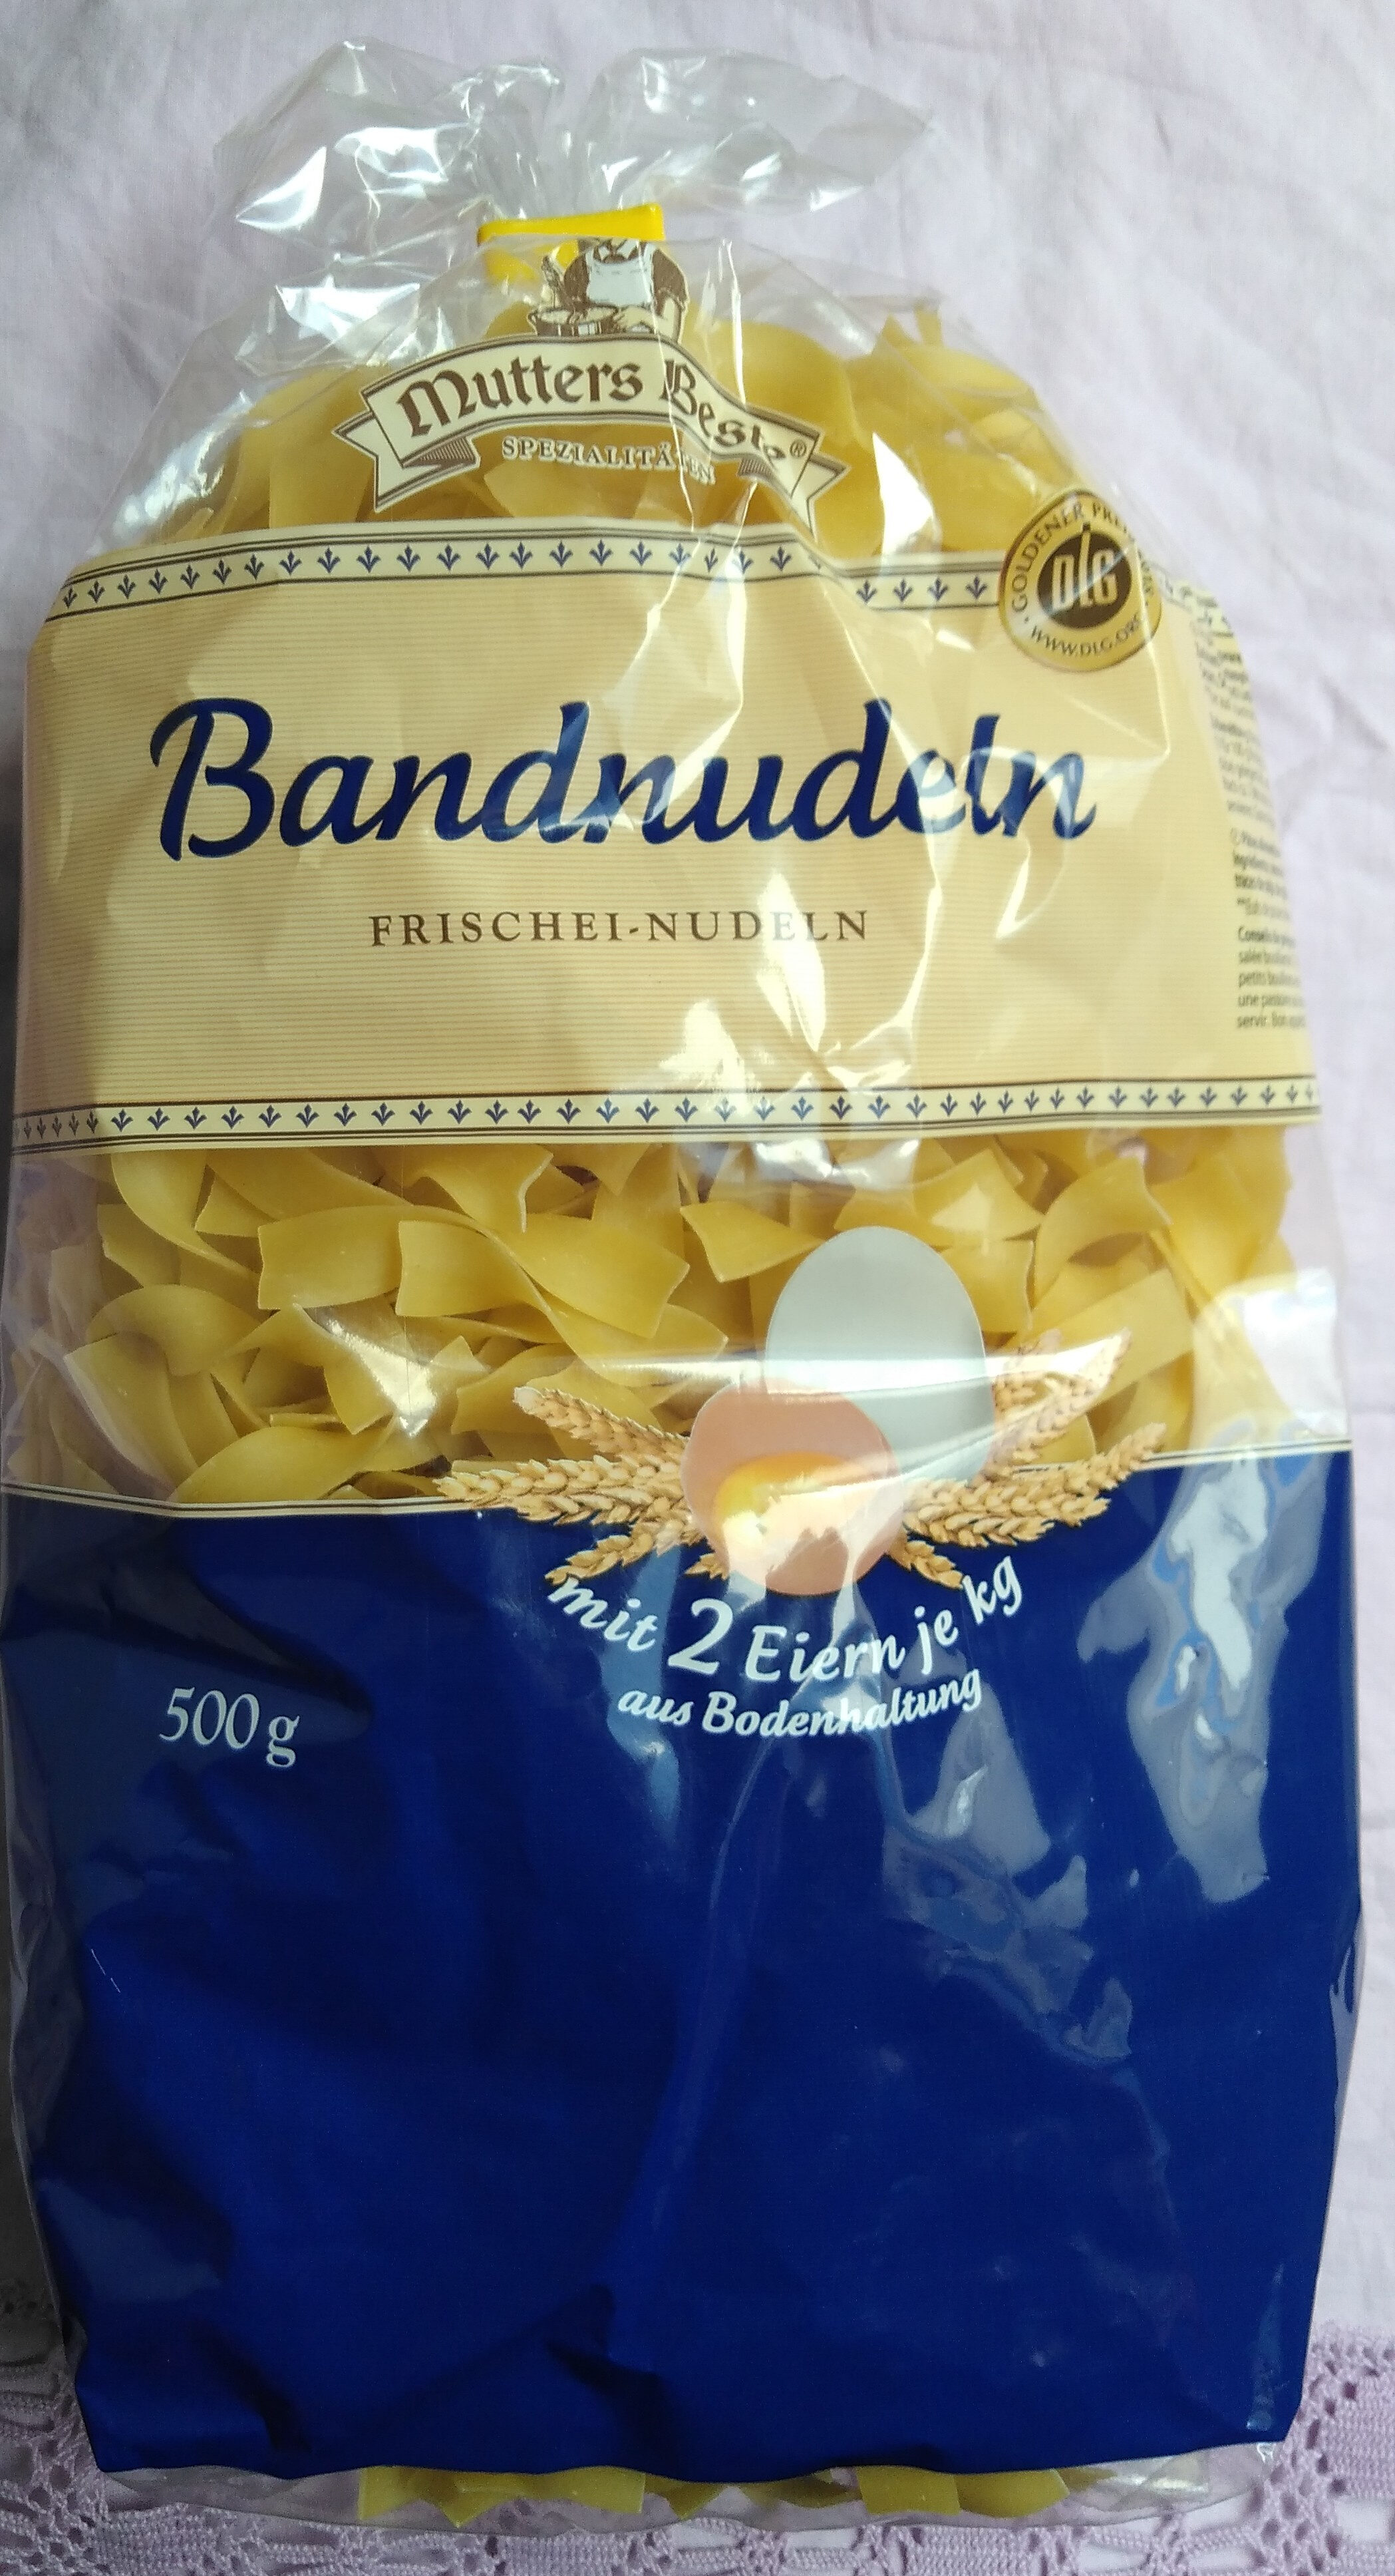 Bandnudeln Frischei-Nudeln - Product